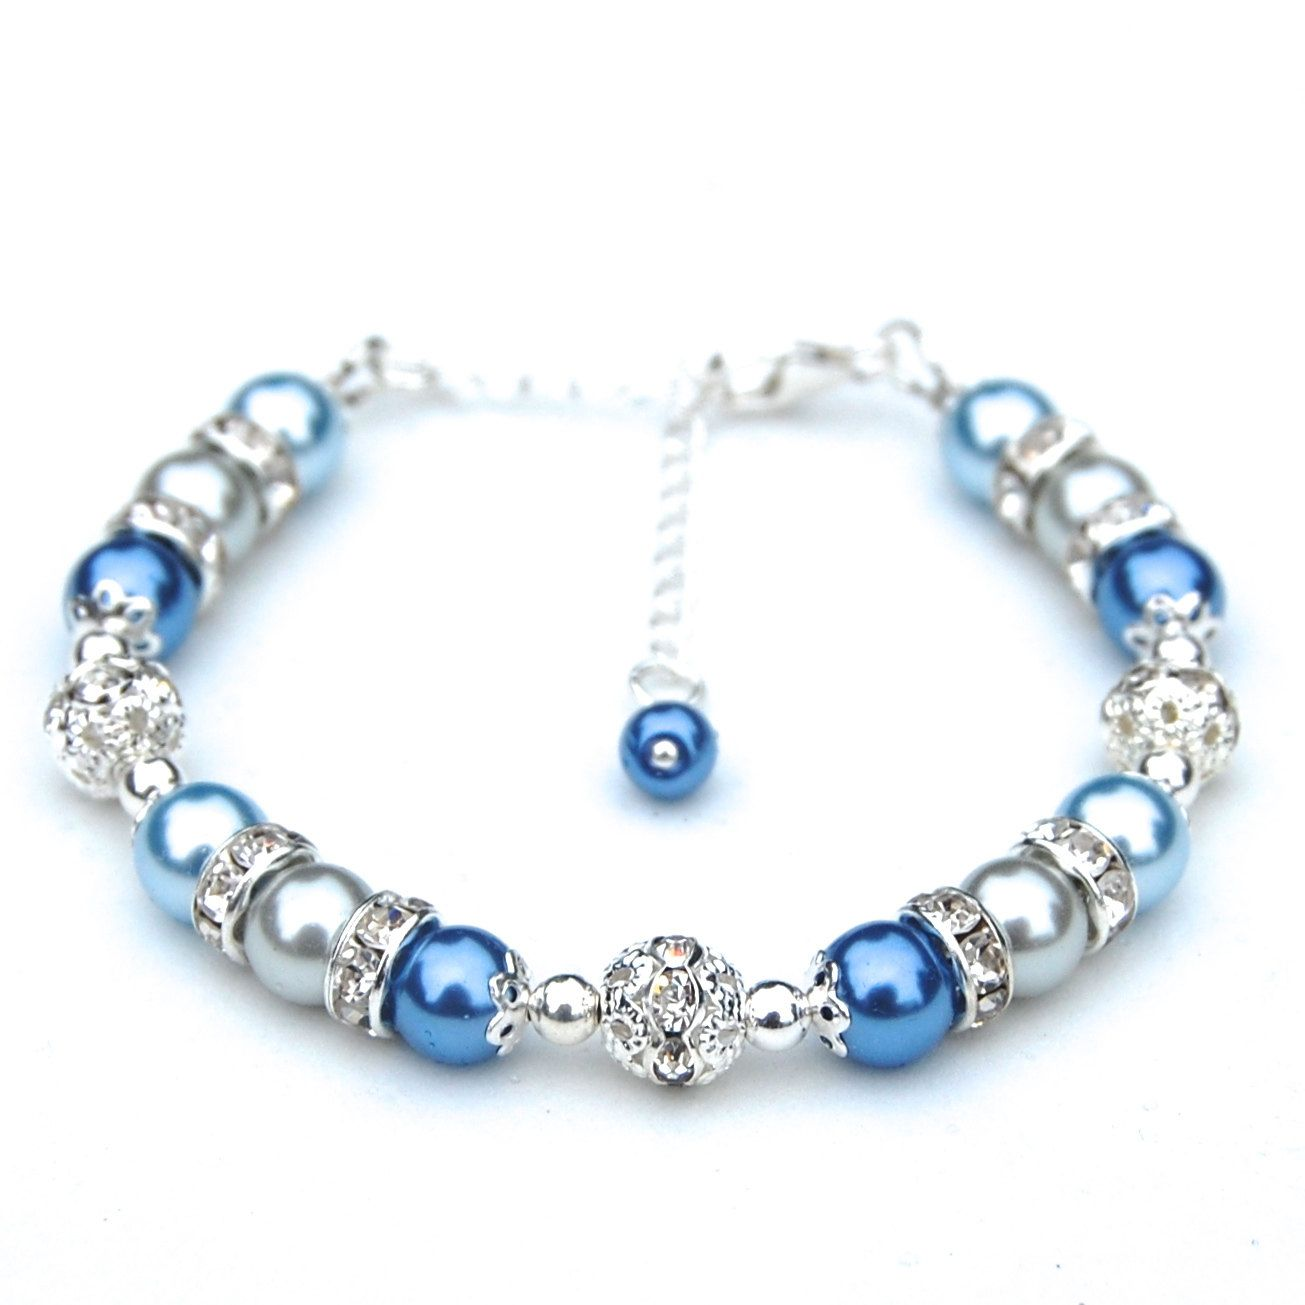 Bridesmaid Jewelry, Pale Blue and Silver Gray Pearl Rhinestone Bracelet, Bridesmaid Gifts by AMIdesigns on Etsy